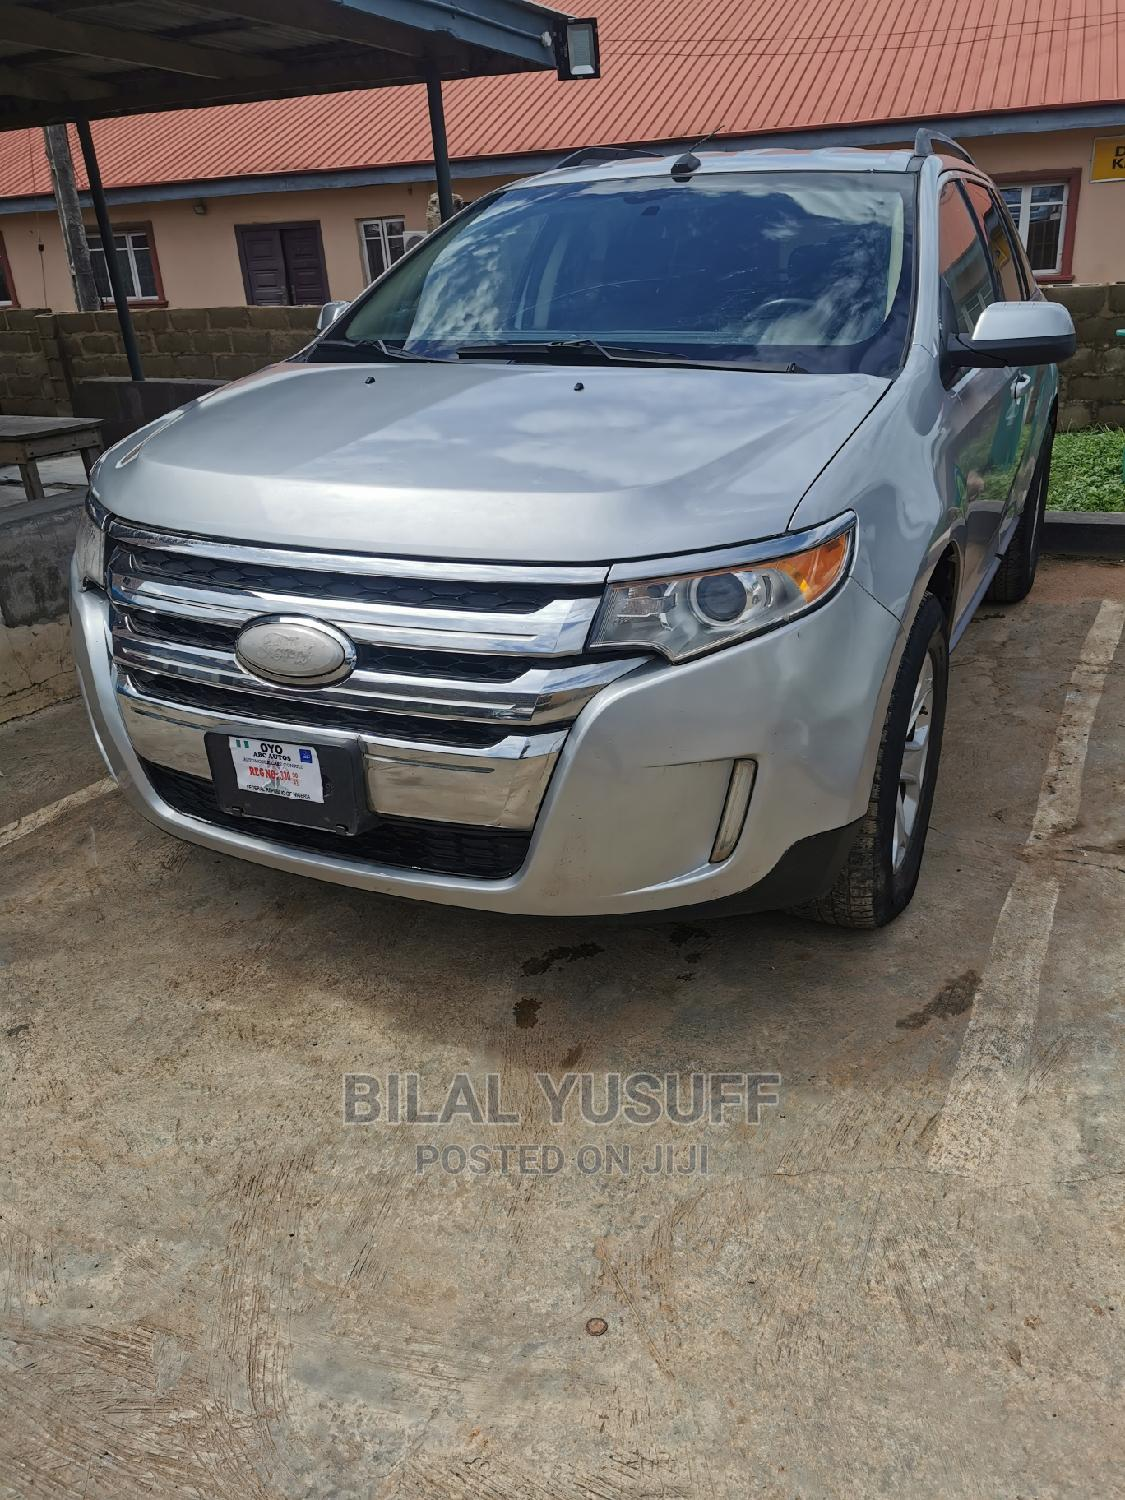 Archive: Ford Edge 2013 SE 4dr FWD (3.5L 6cyl 6A) Silver